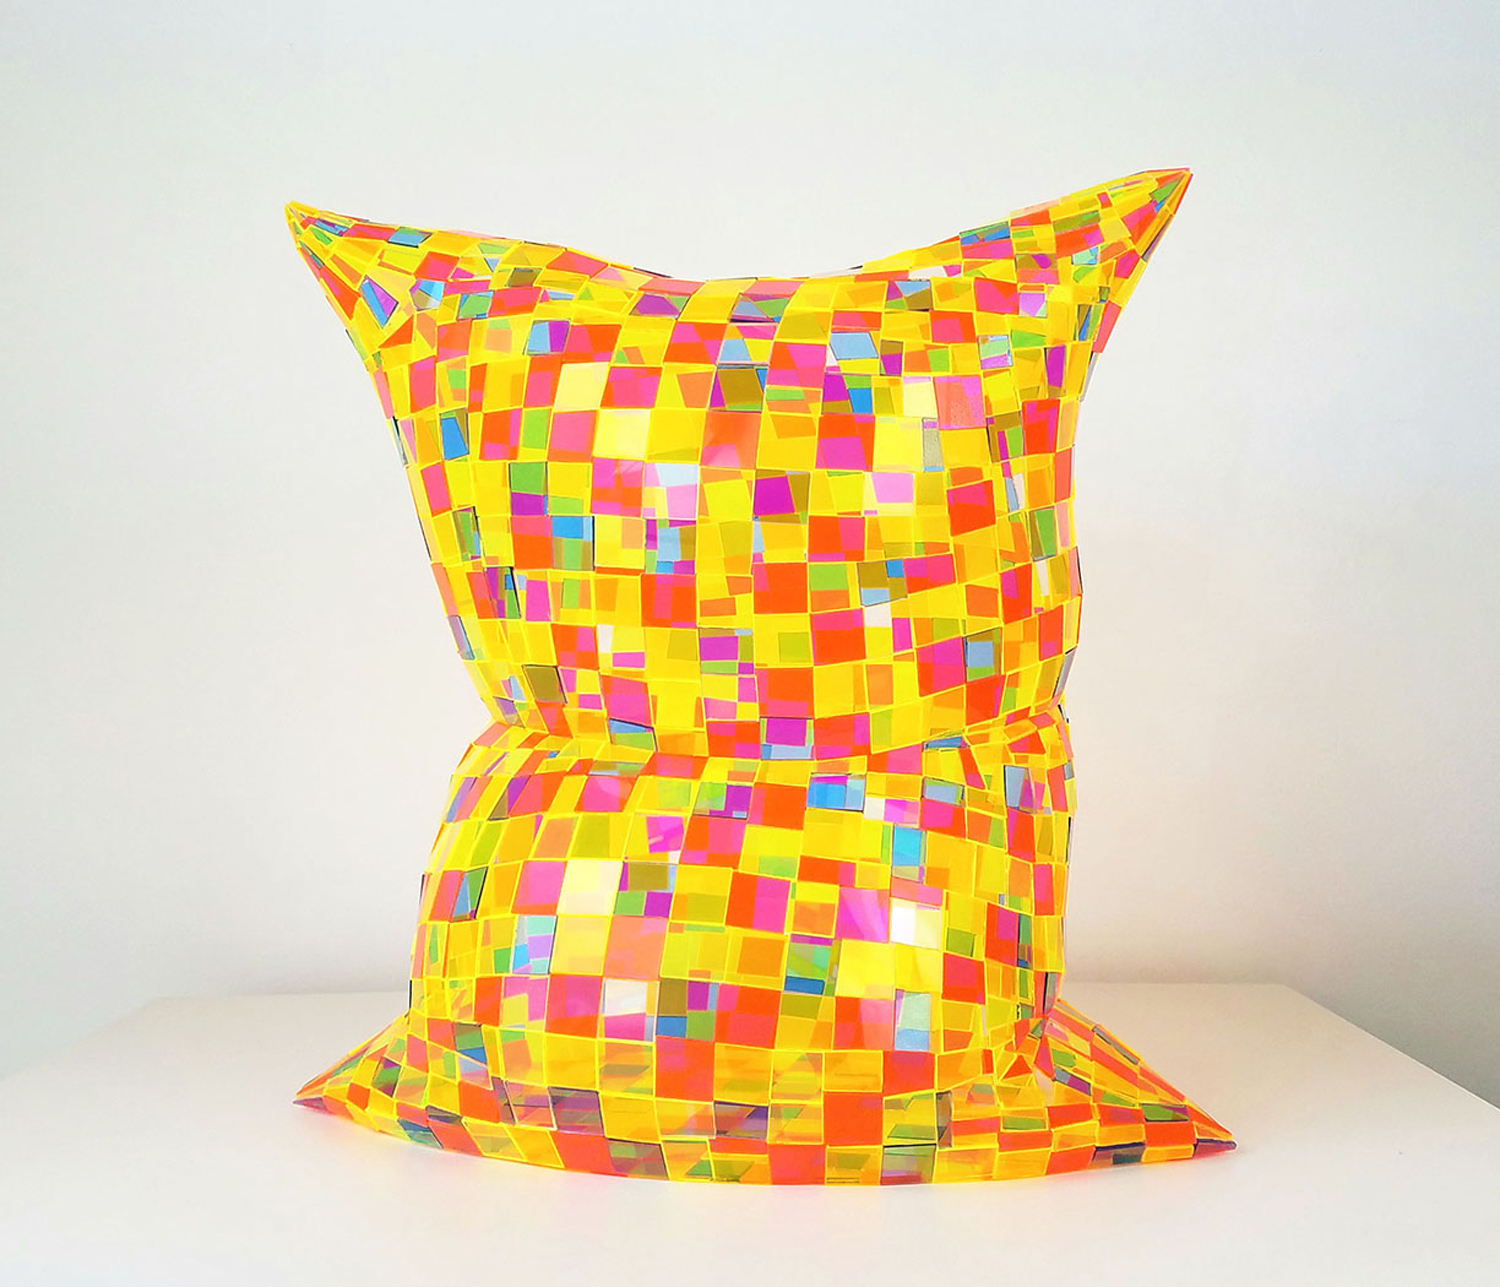 Item 194 - Roberts, Neon Speckled Pillow